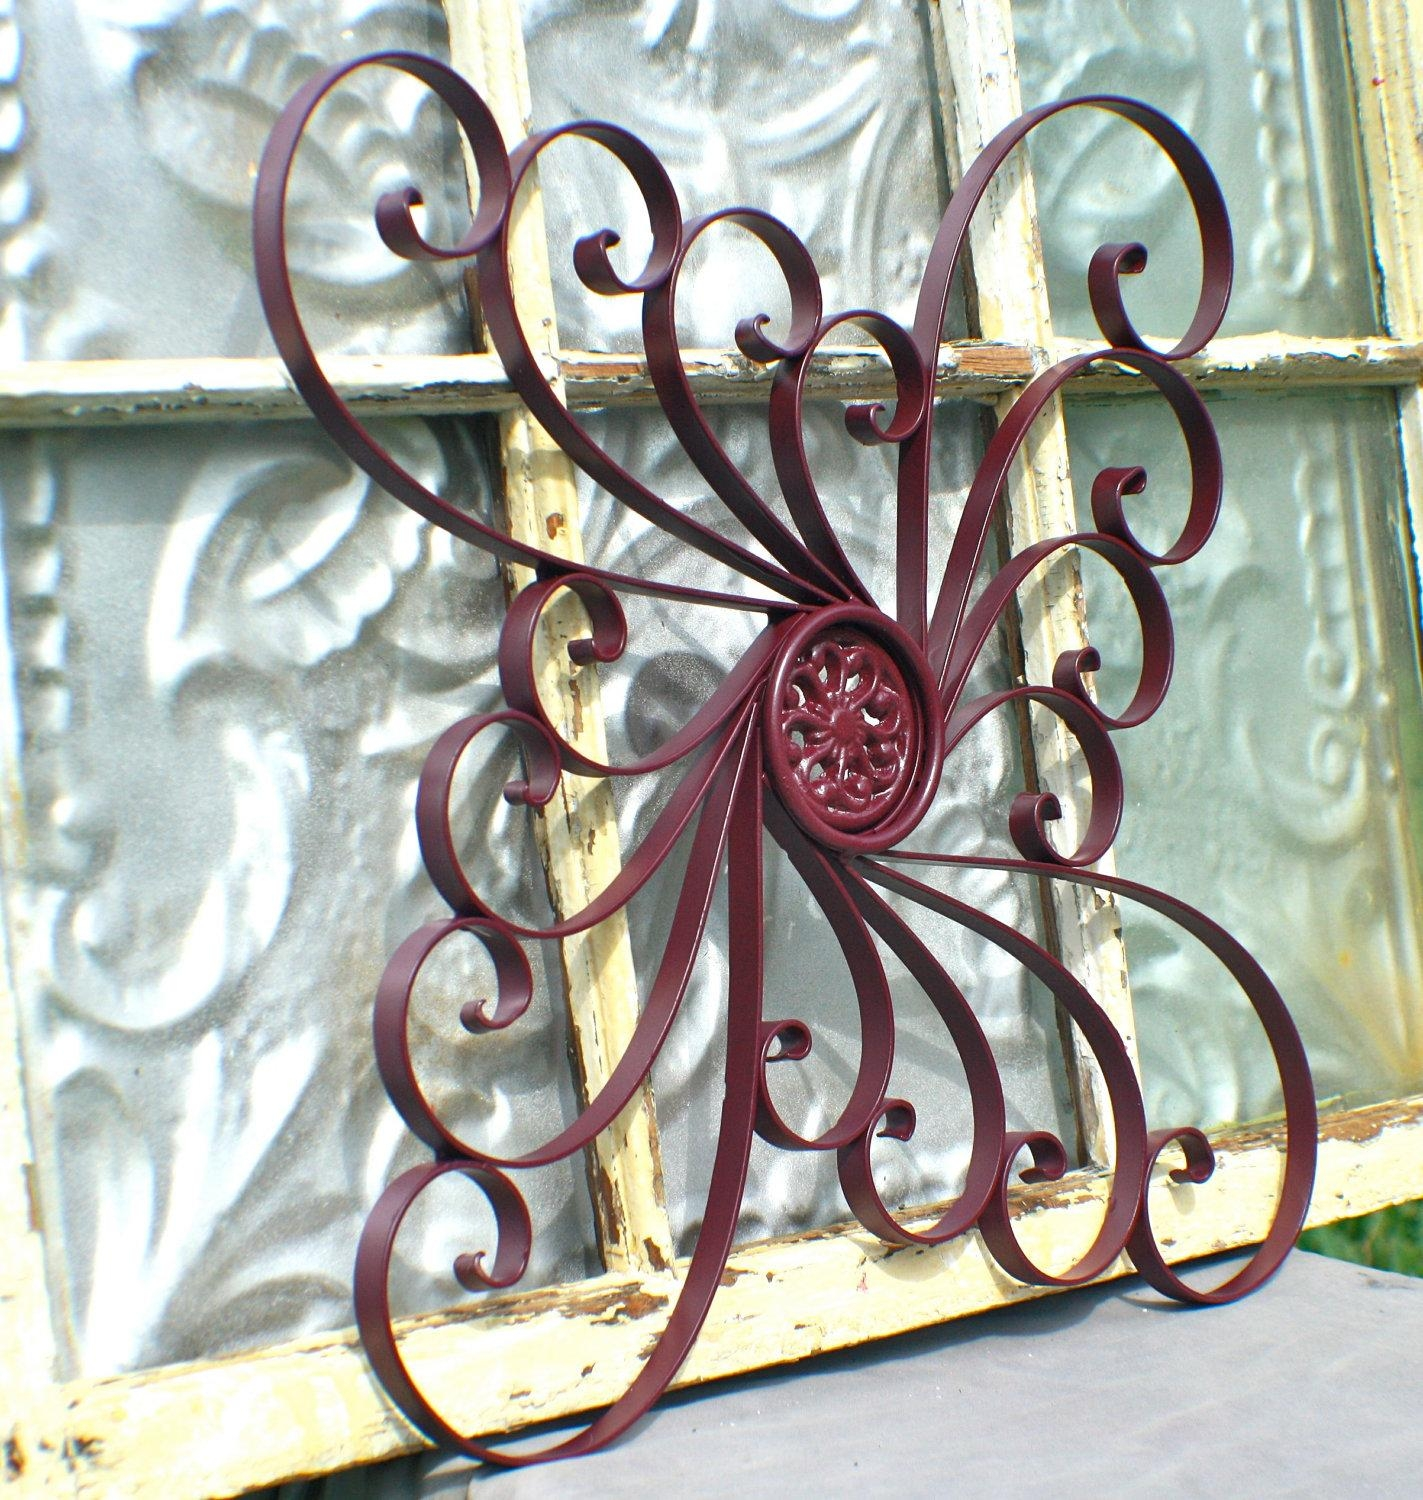 Railings Gates Polyvore Wall Decor Home Decor | Kohl's Outdoor In Wrought Iron Garden Wall Art (Image 10 of 20)